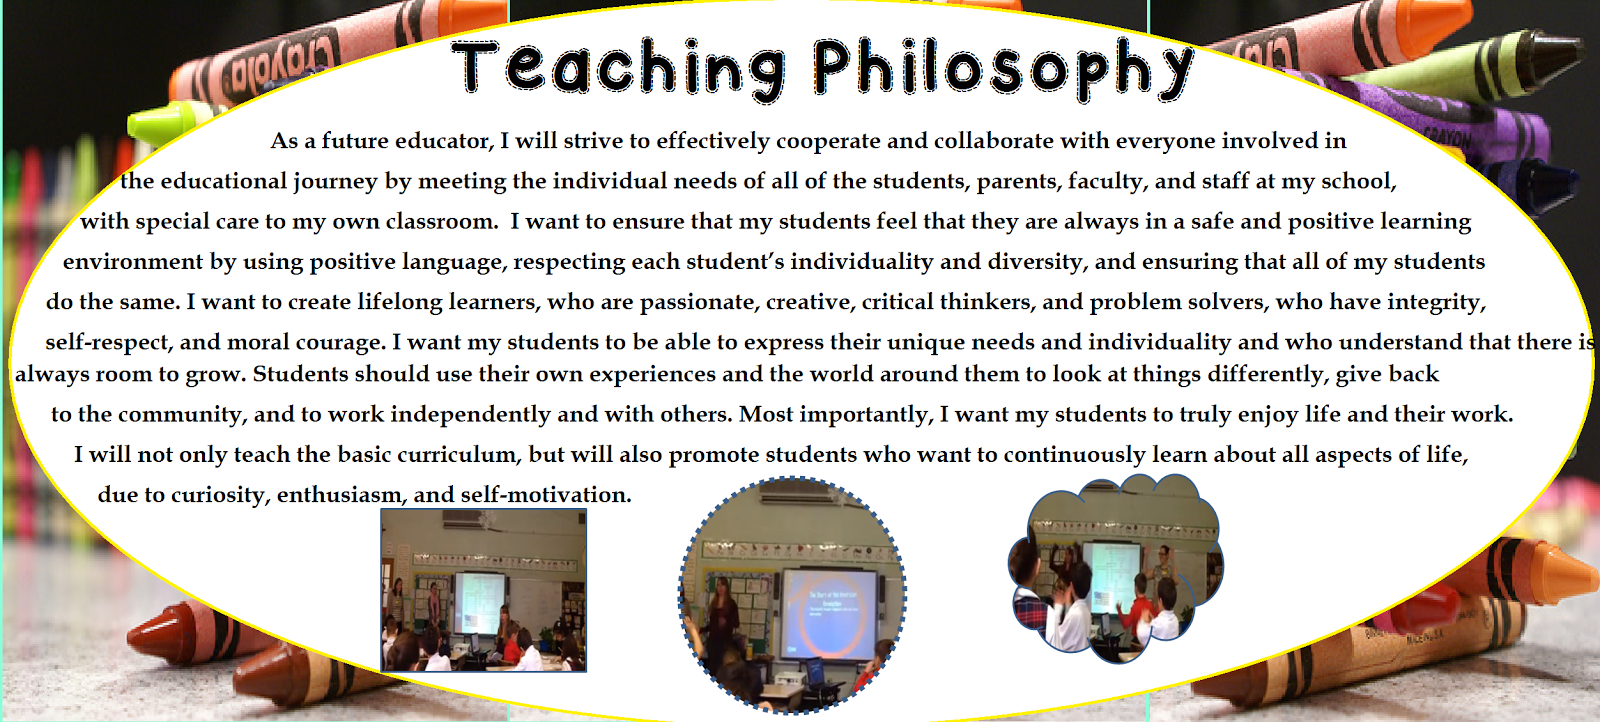 a future teacher's philosophy of education A philosophy of education statement, sometimes called a teaching statement, should be a staple in every teacher's portfolioyour statement of educational philosophy is an opportunity to define what teaching means to you as an educator, as well as describe how and why you teach as you do.